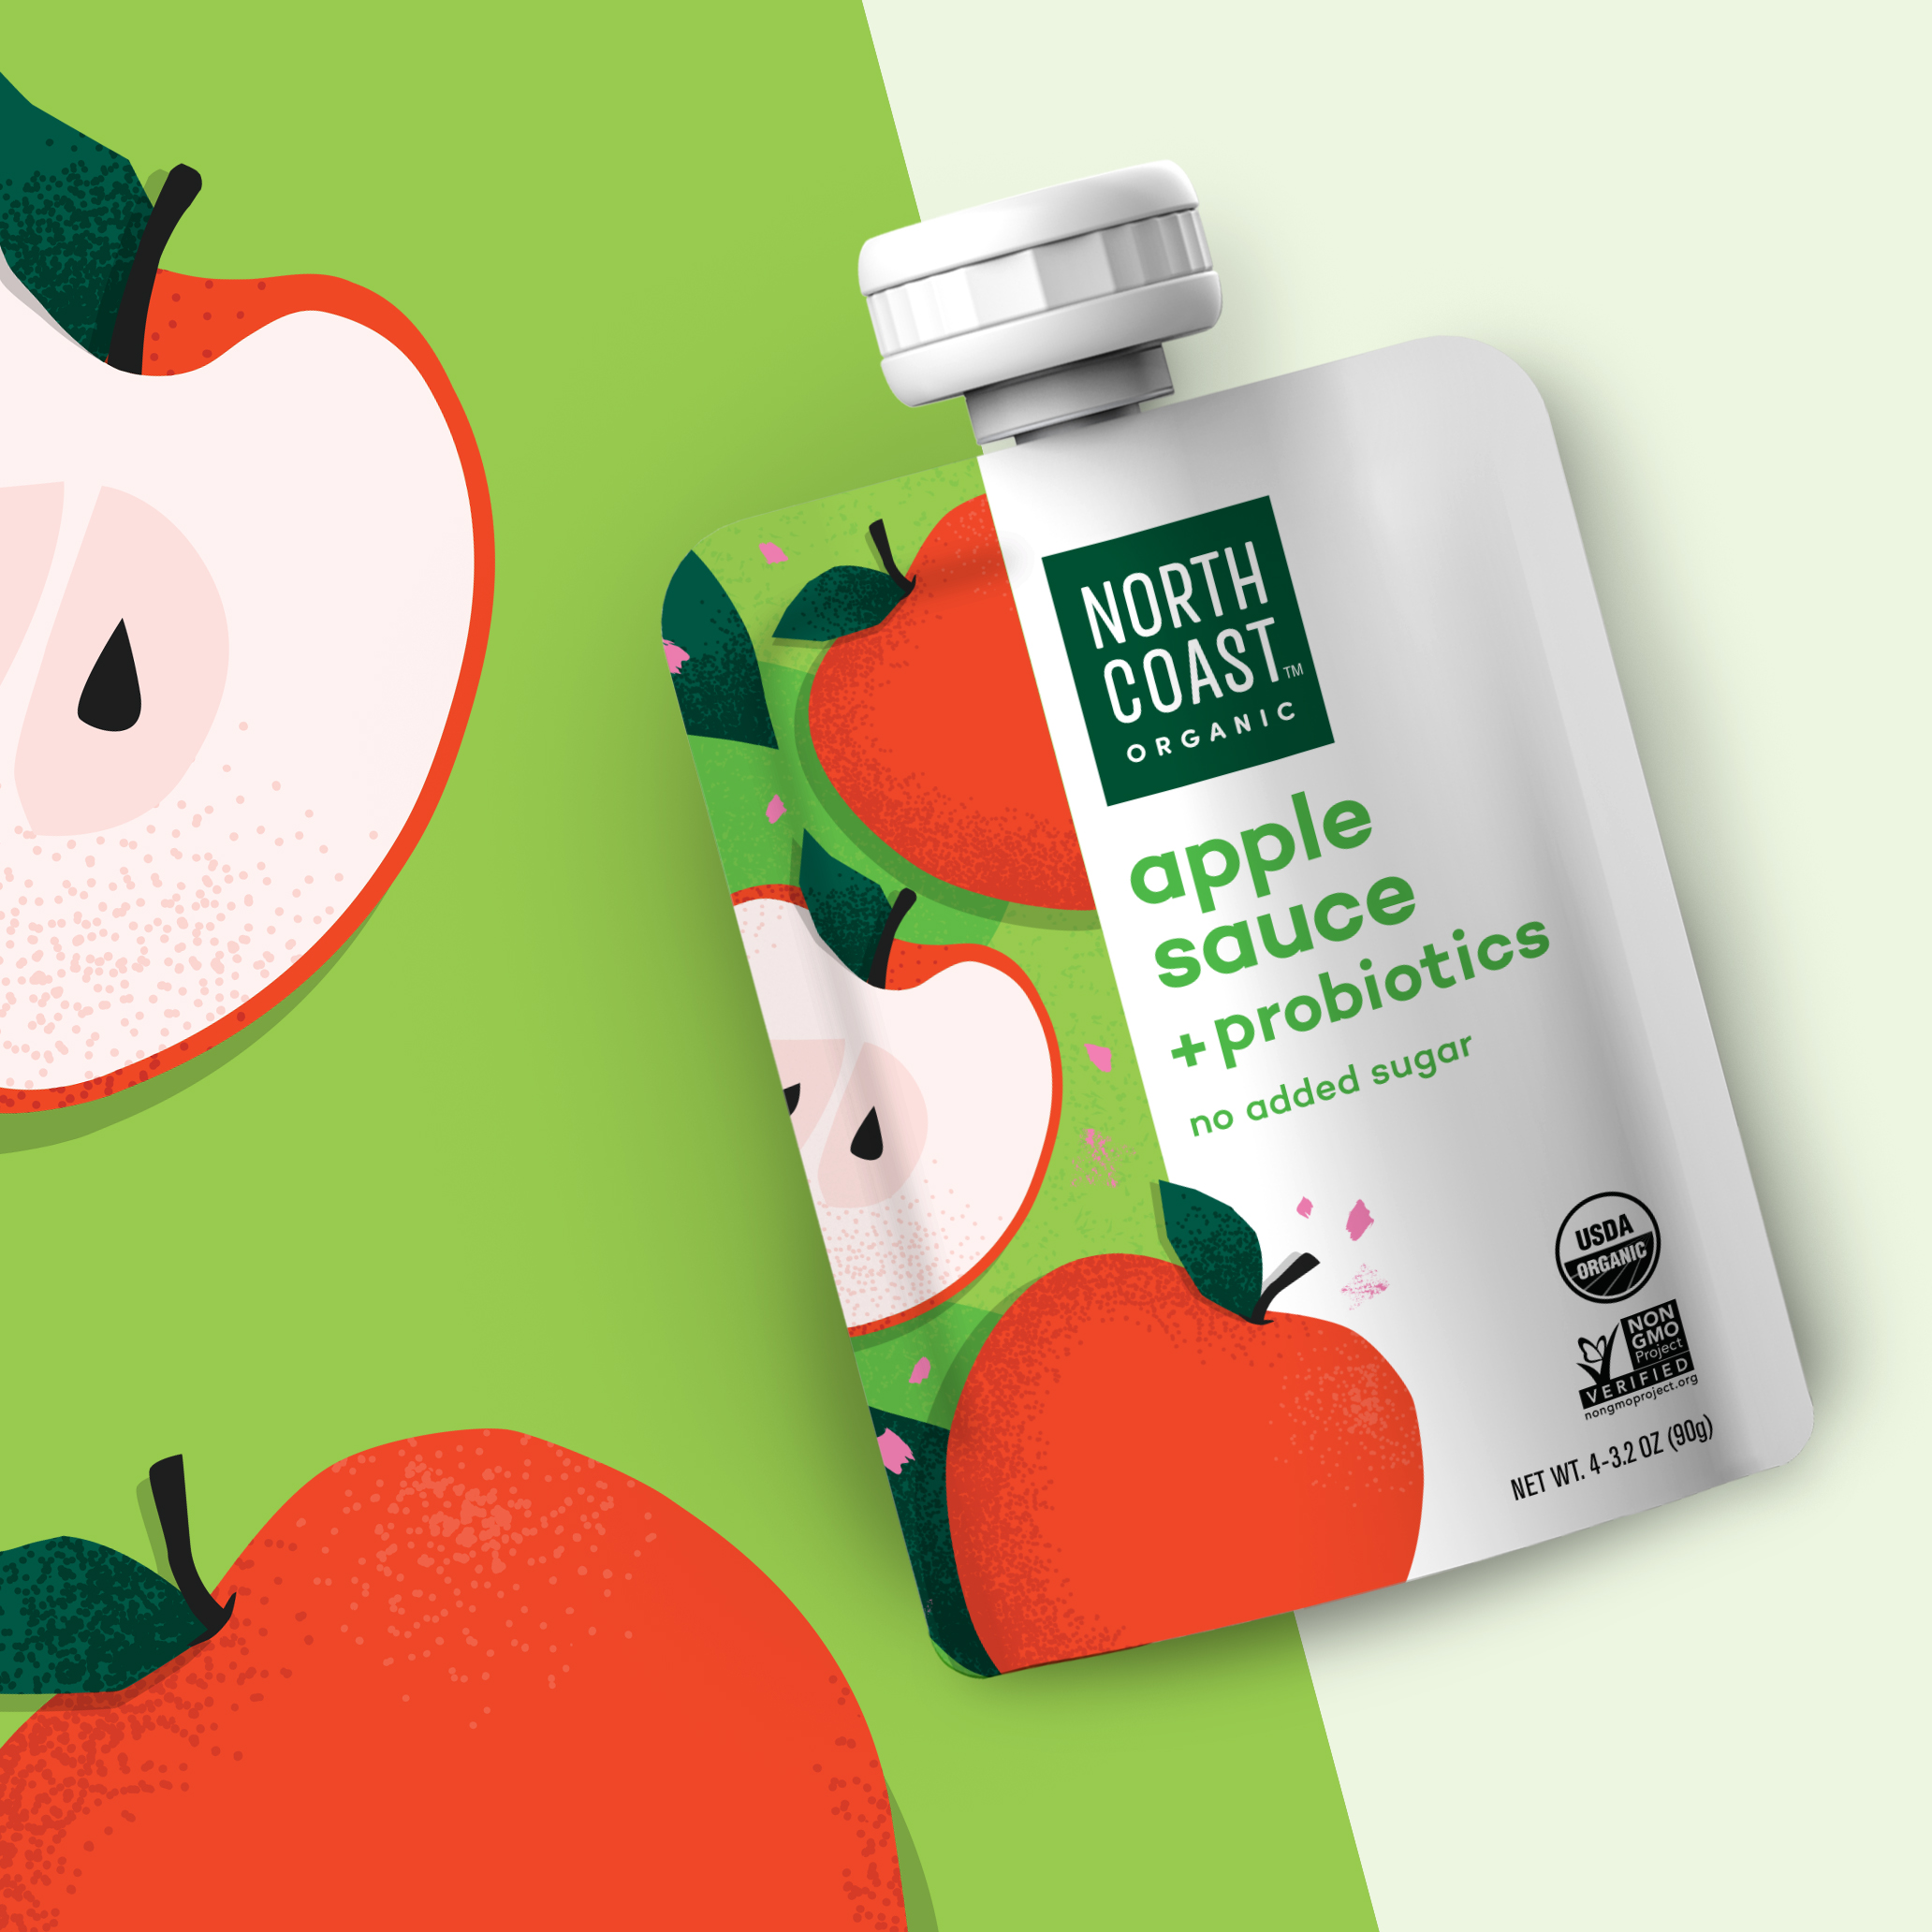 Northcoast organic packaging applesauce pouch